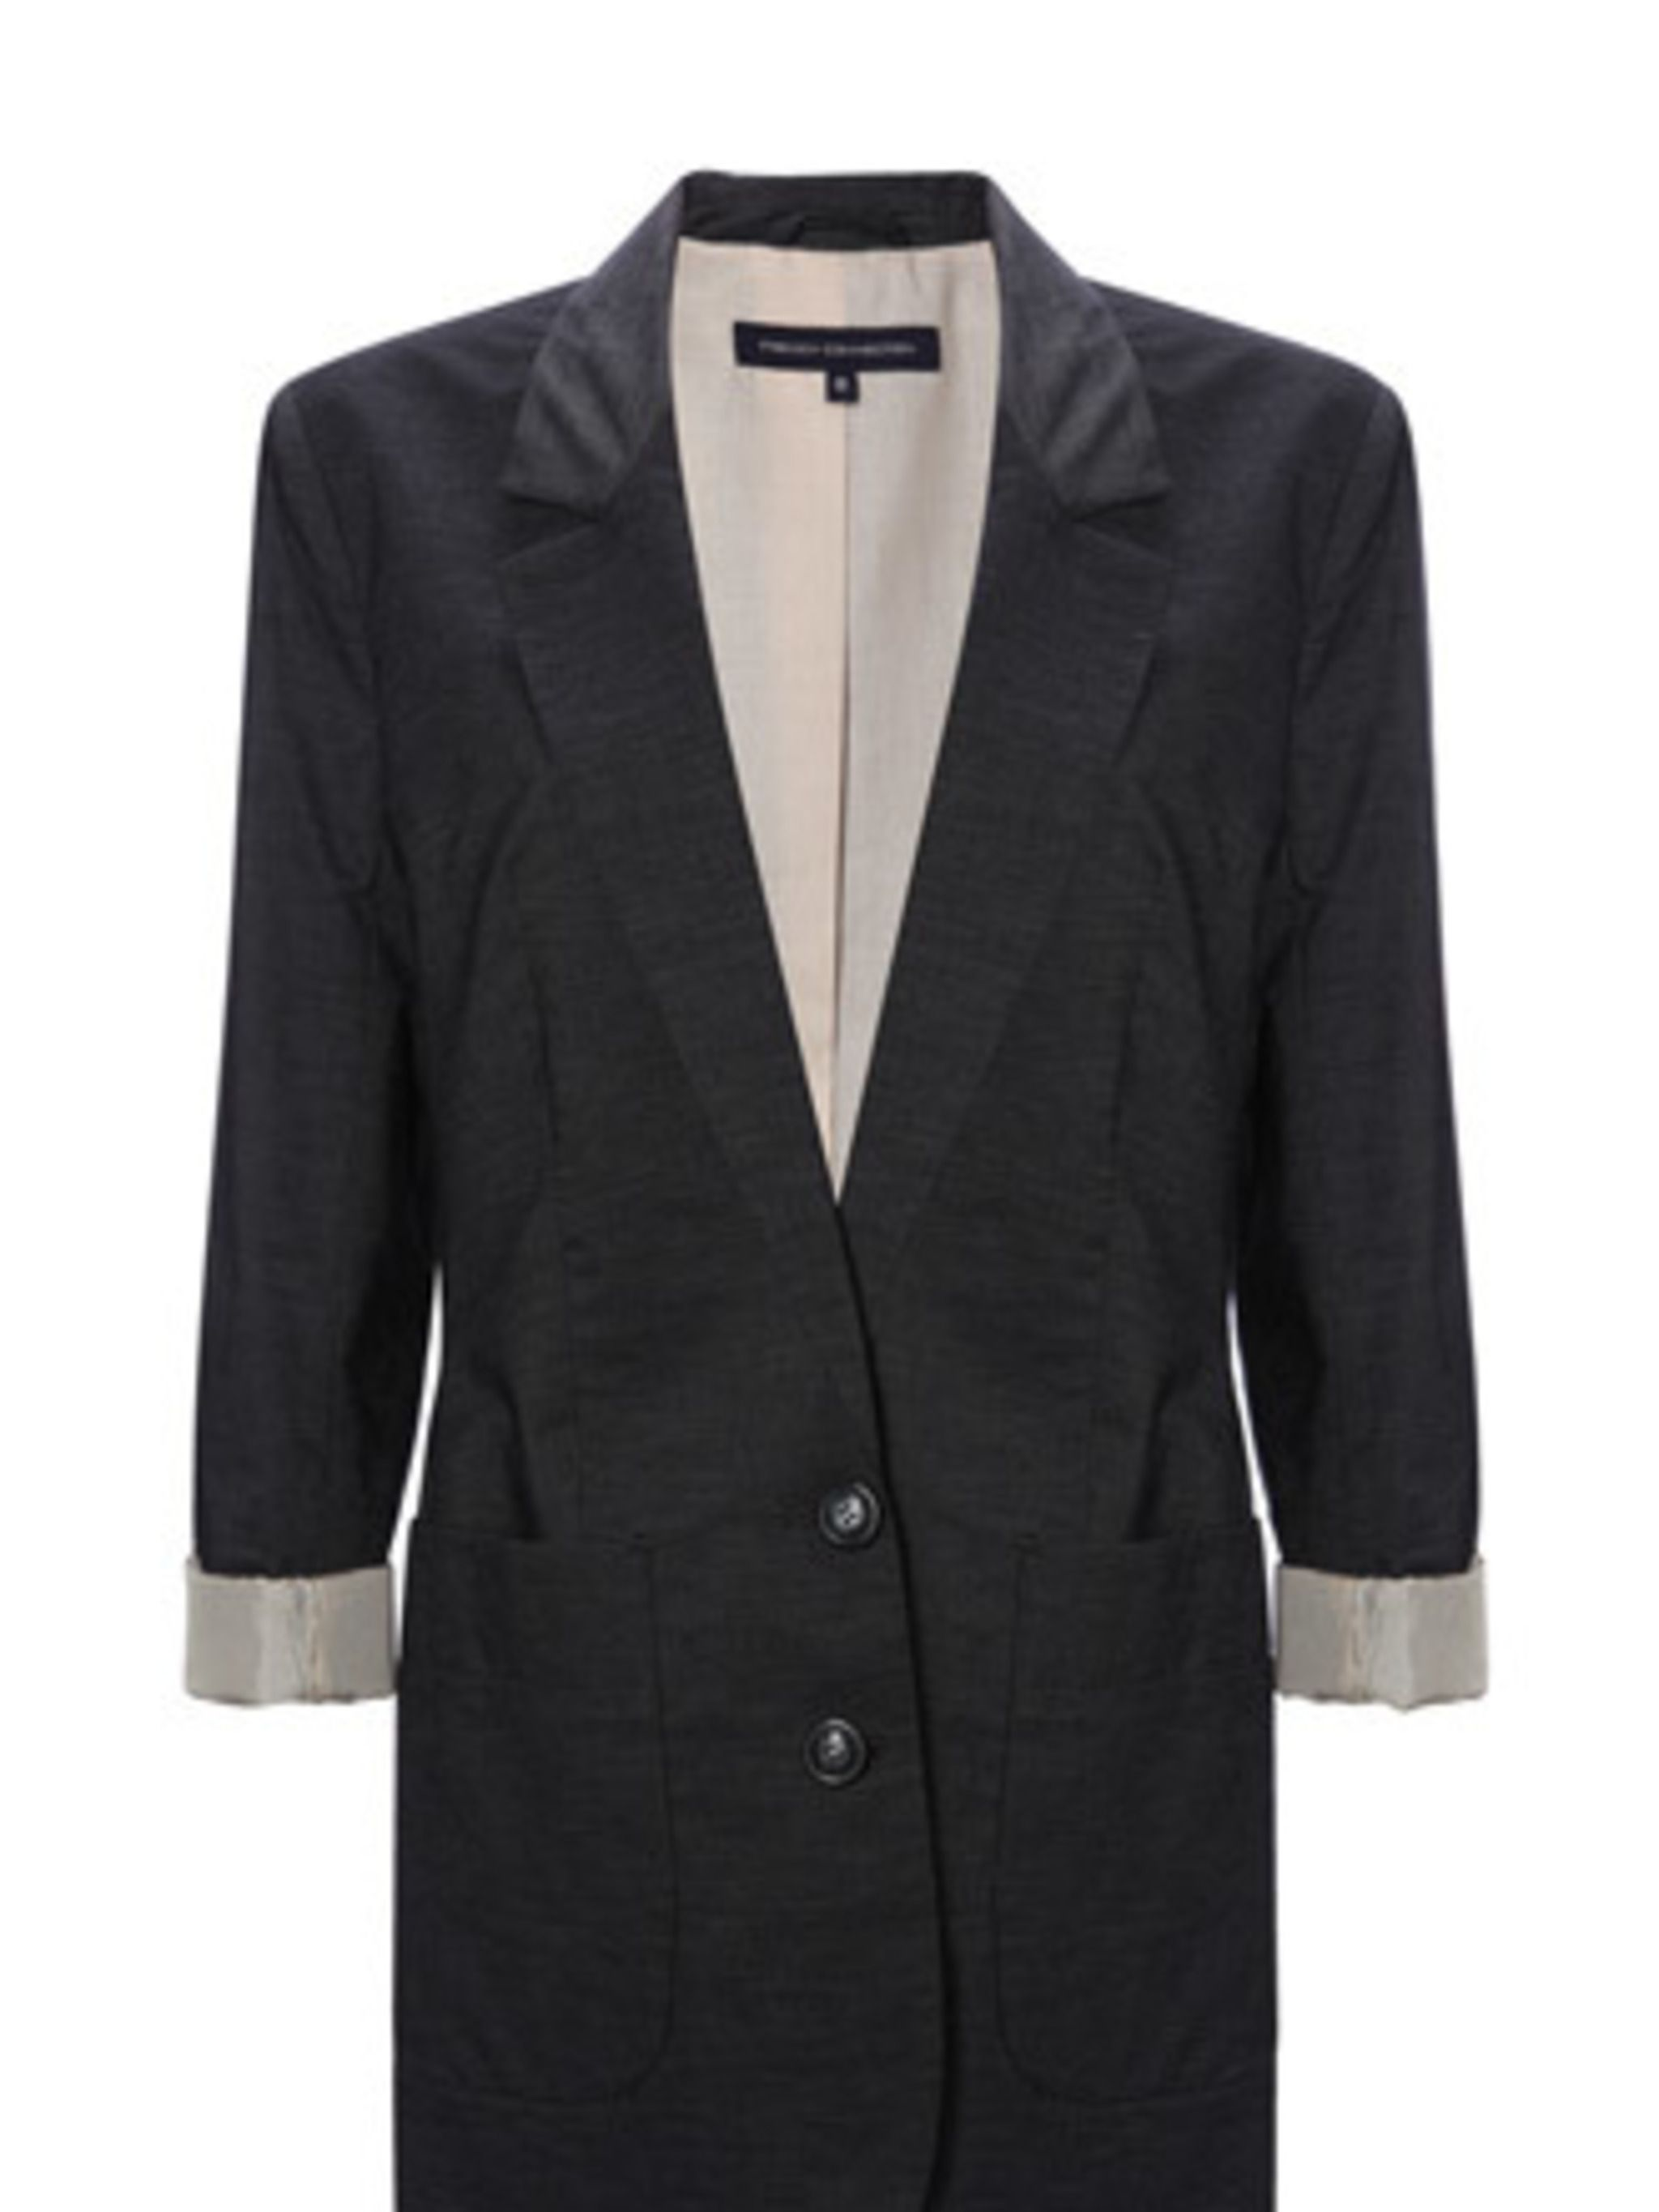 """<p>Thanks to its practicality and ability to smarten up any outfit, the blazer's popularity has yet to wane. This light-weight cotton version is a must-buy for your new season wardrobe.</p><p>Cotton blazer, £115 by <a href=""""http://www.frenchconnection.com"""